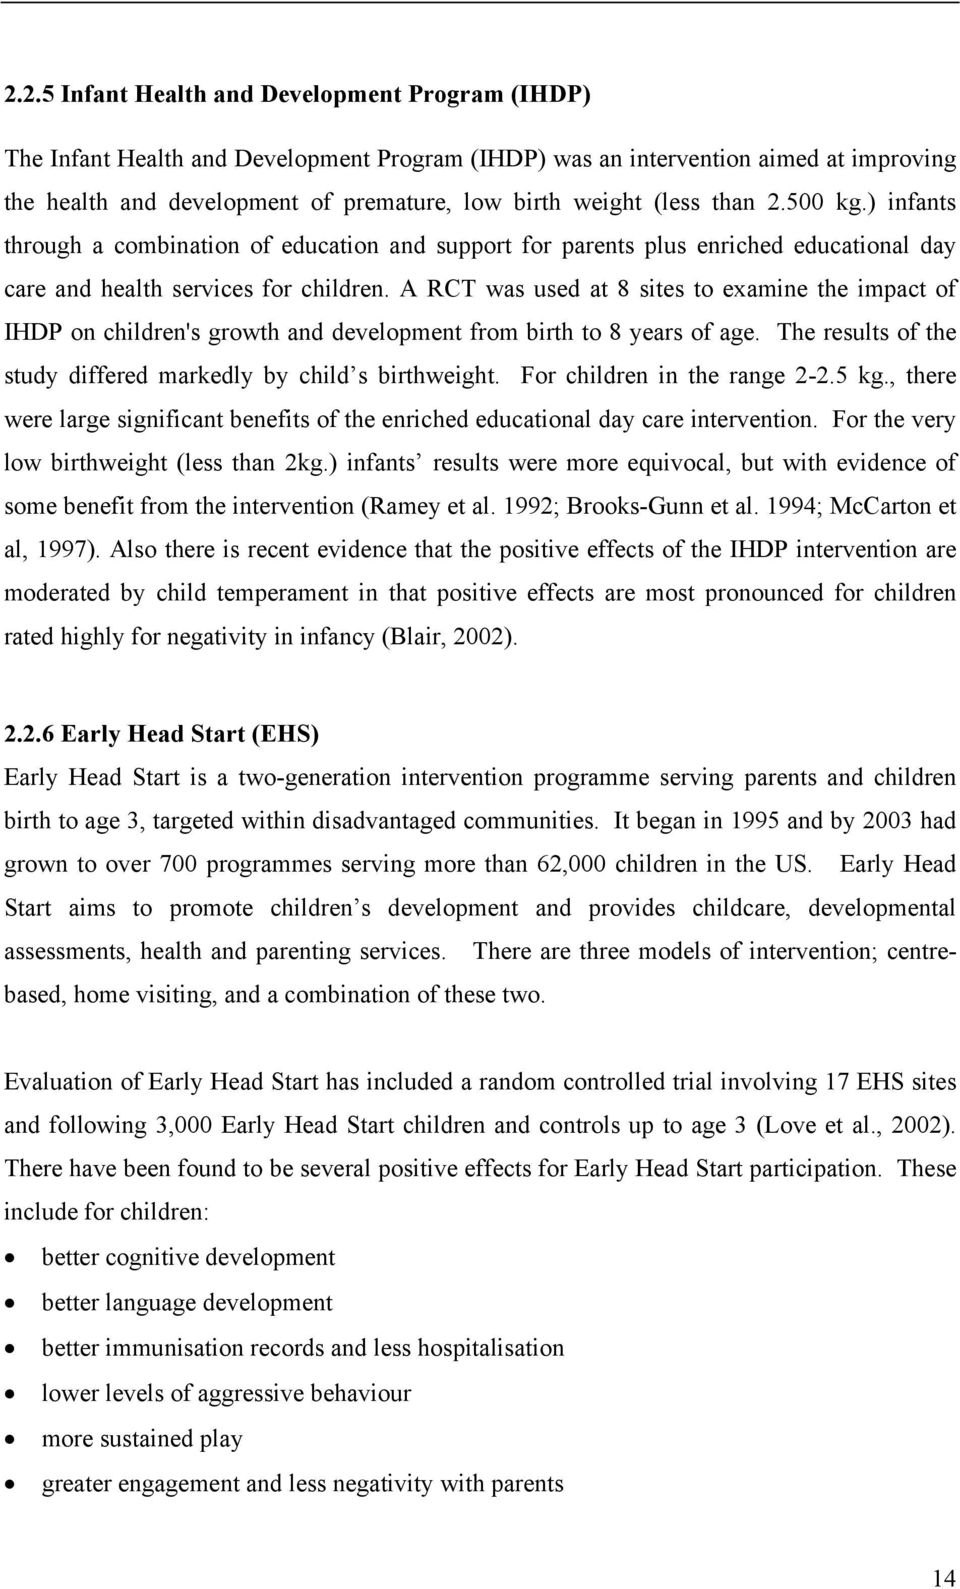 A RCT was used at 8 sites to examine the impact of IHDP on children's growth and development from birth to 8 years of age. The results of the study differed markedly by child s birthweight.